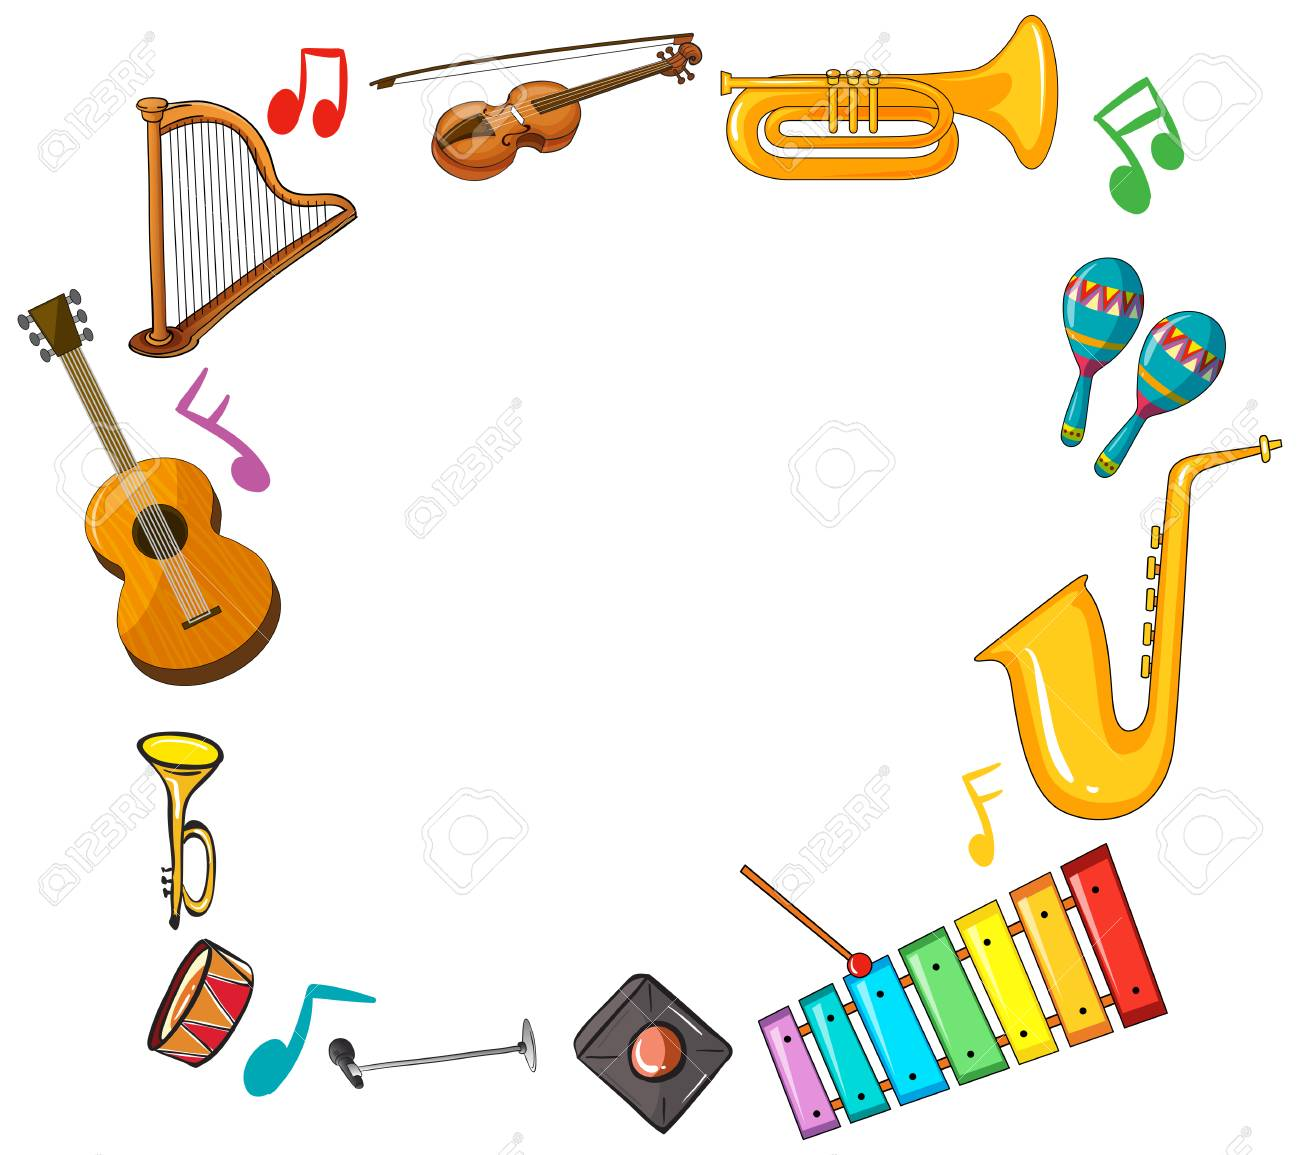 Border template with musical instruments illustration.